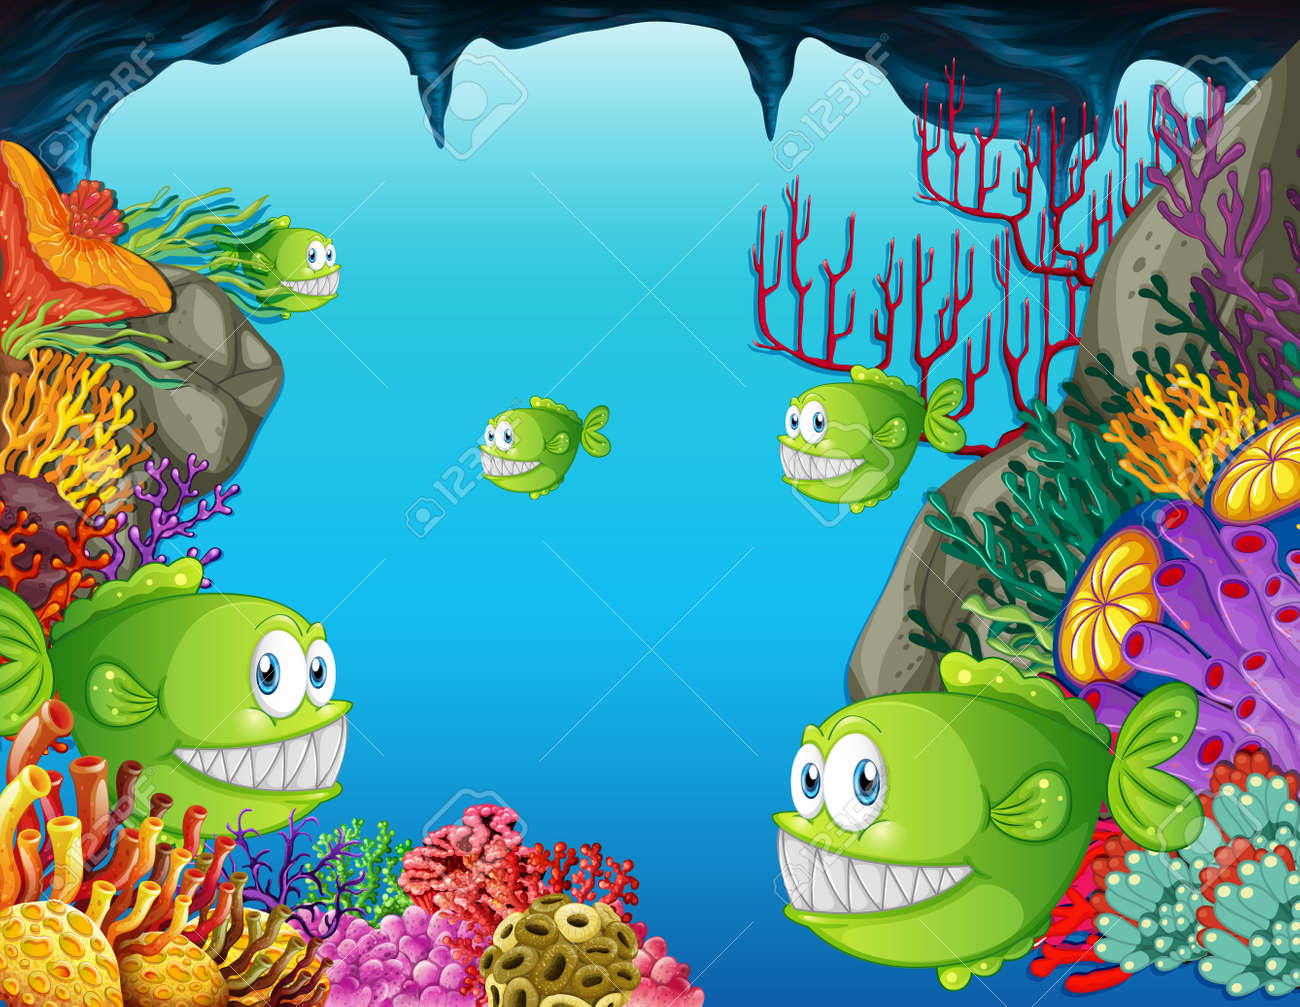 Many exotic fishes cartoon character in the underwater scene with corals illustration - 164379737